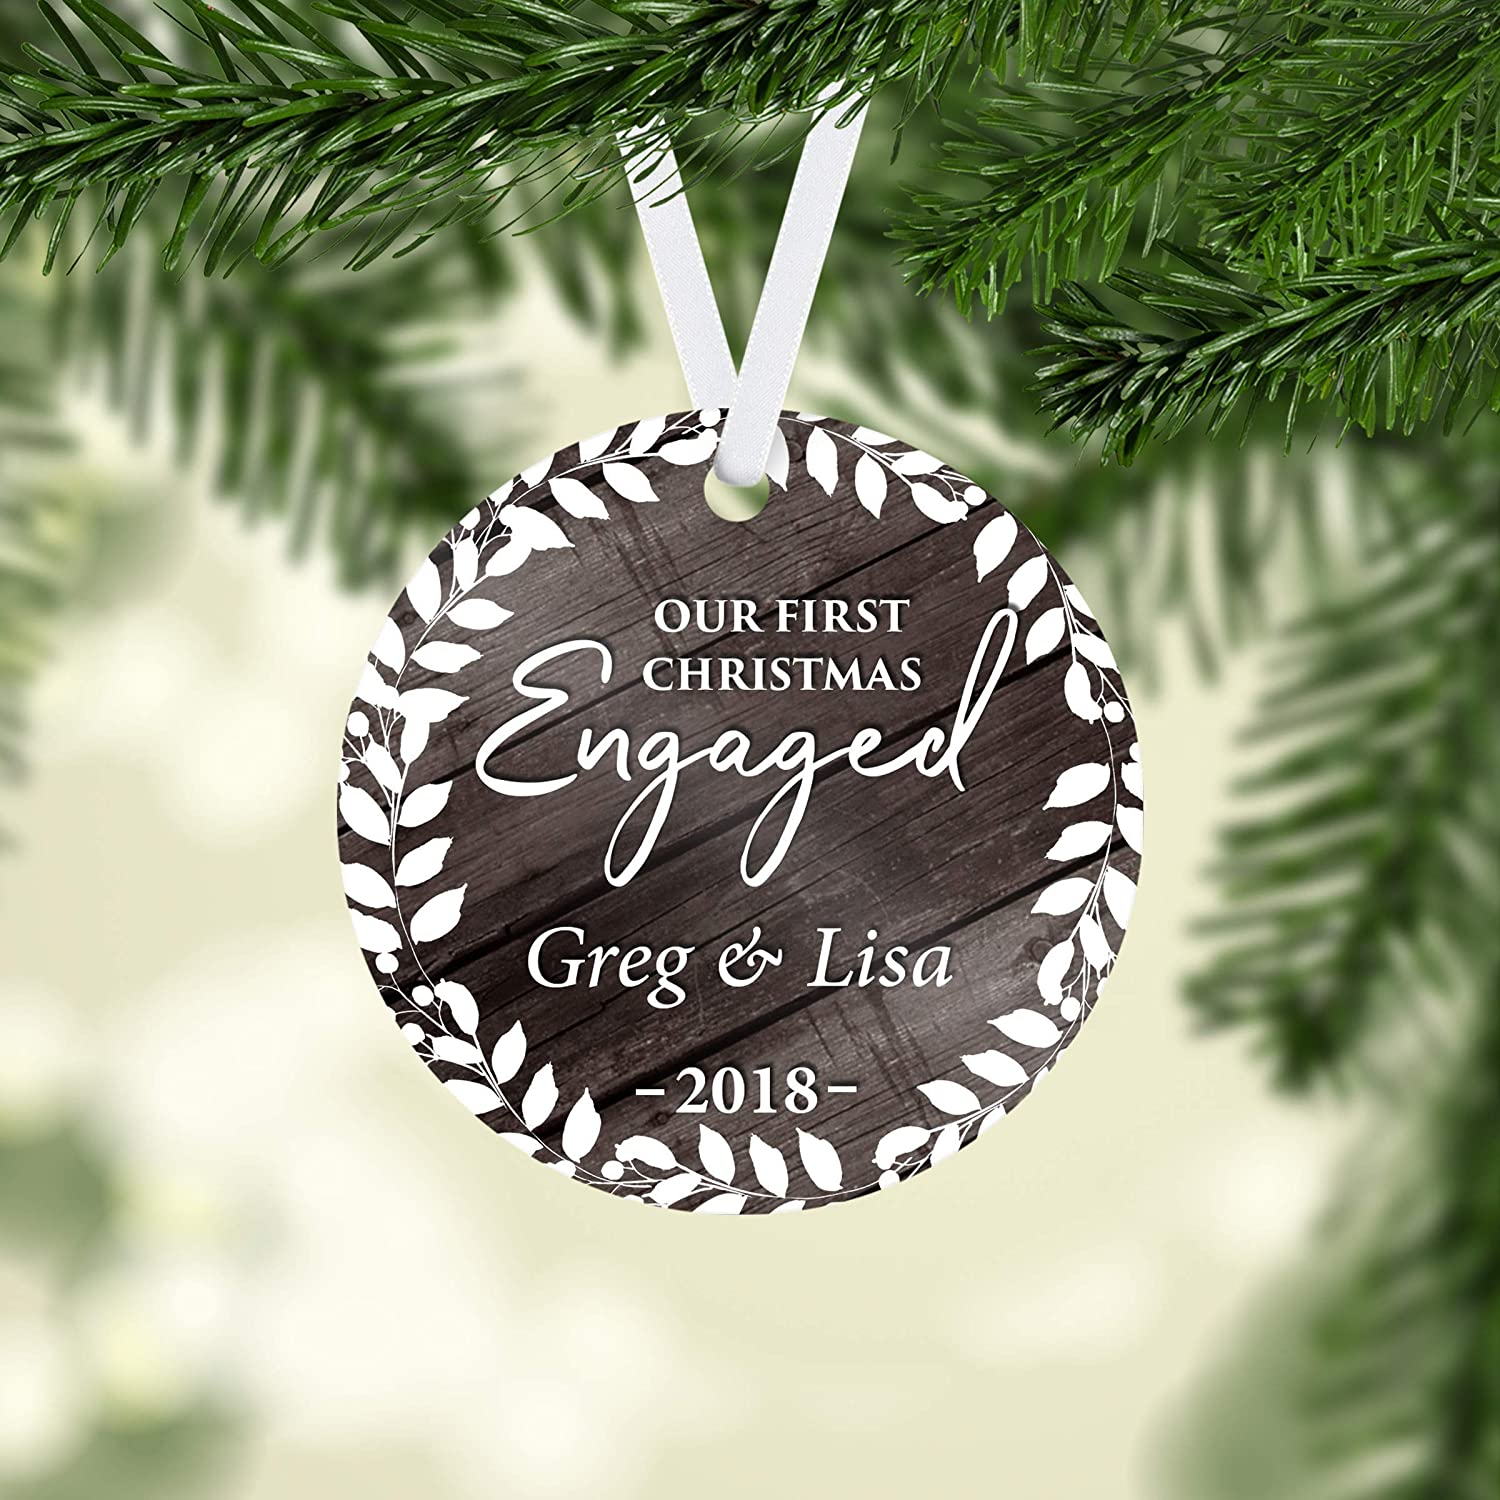 Amazon Com Engaged Christmas Ornament Personalized Couples Our